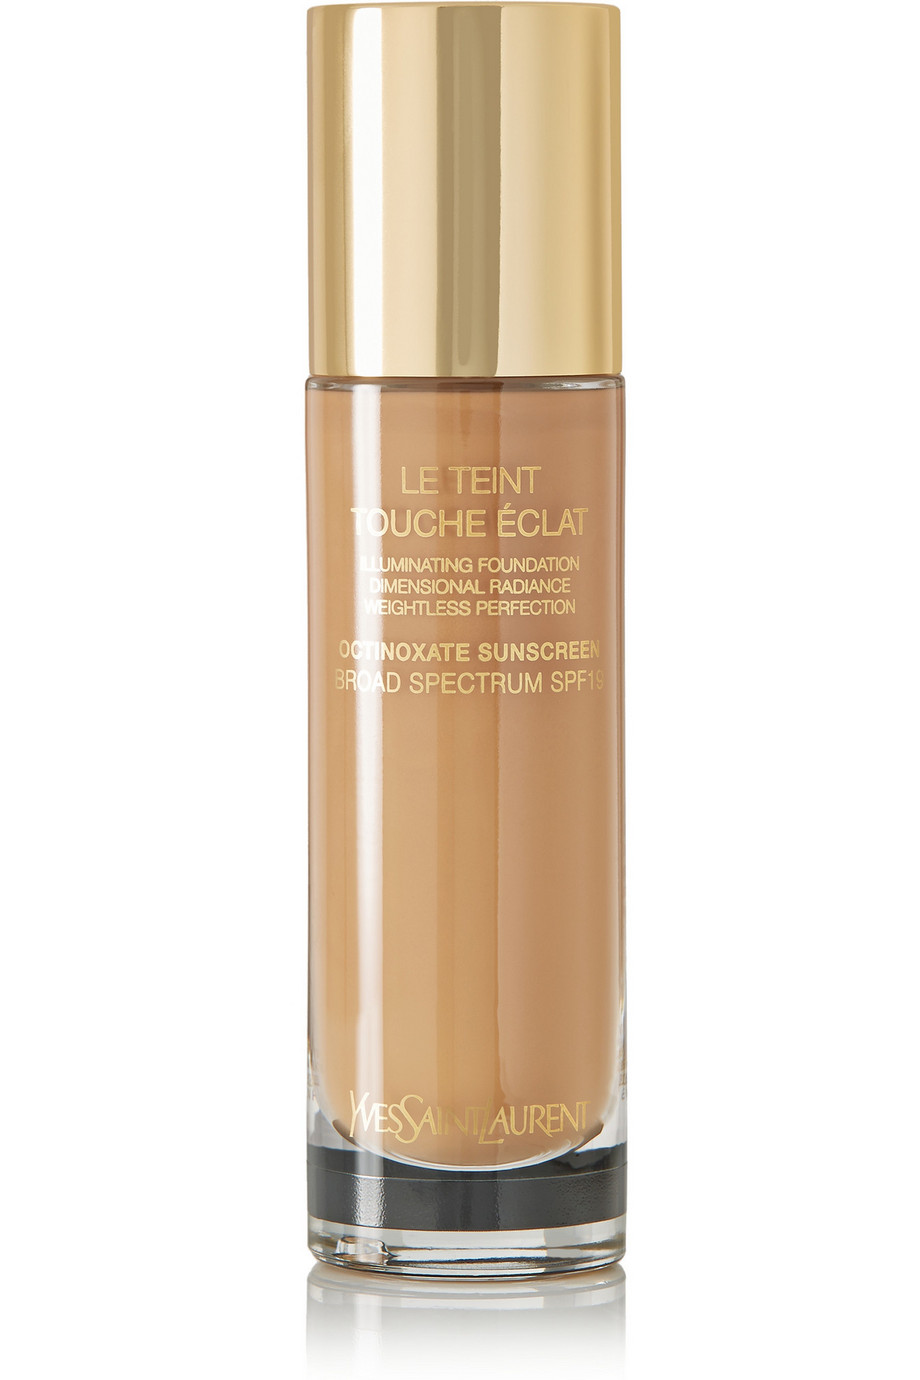 Le Teint Touche Éclat Illuminating Foundation - Beige 50, 30ml, by Yves Saint Laurent Beauty